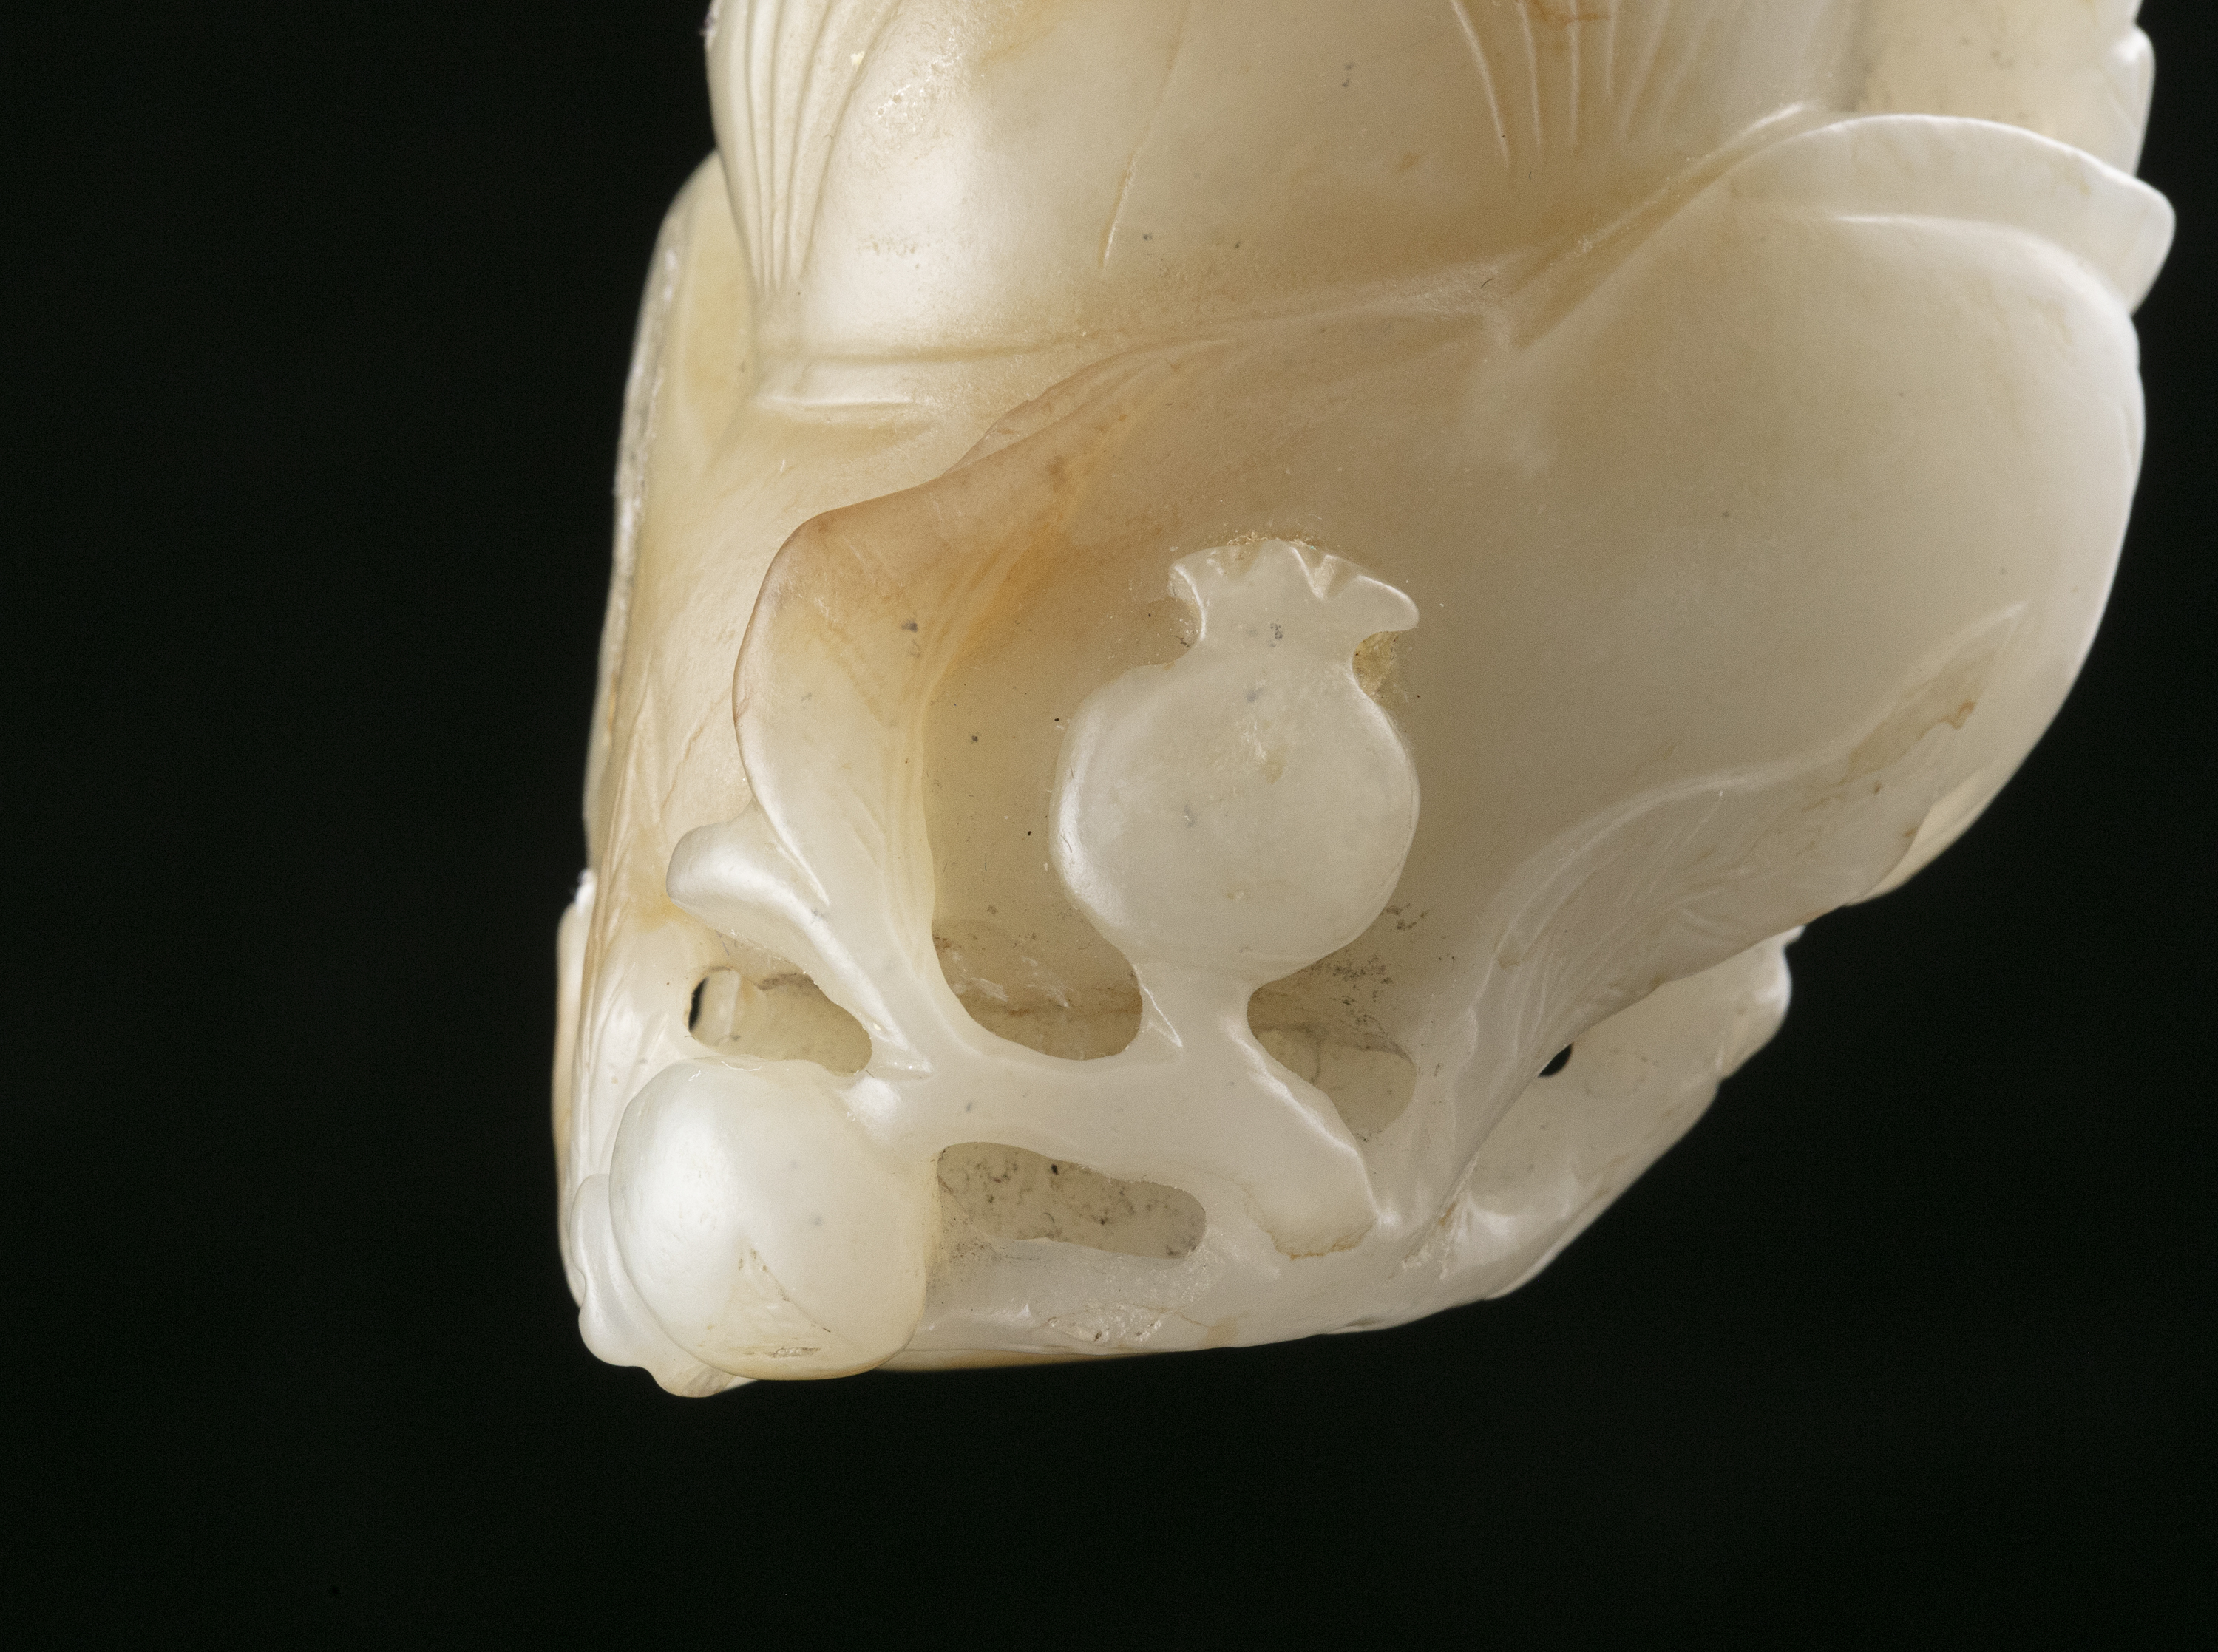 A WHITE AND RUSSETS JADE CARVING OF A HOHO / HEHE / ERXIAN / 和合二仙 China The boy is depicted grasping - Image 12 of 20